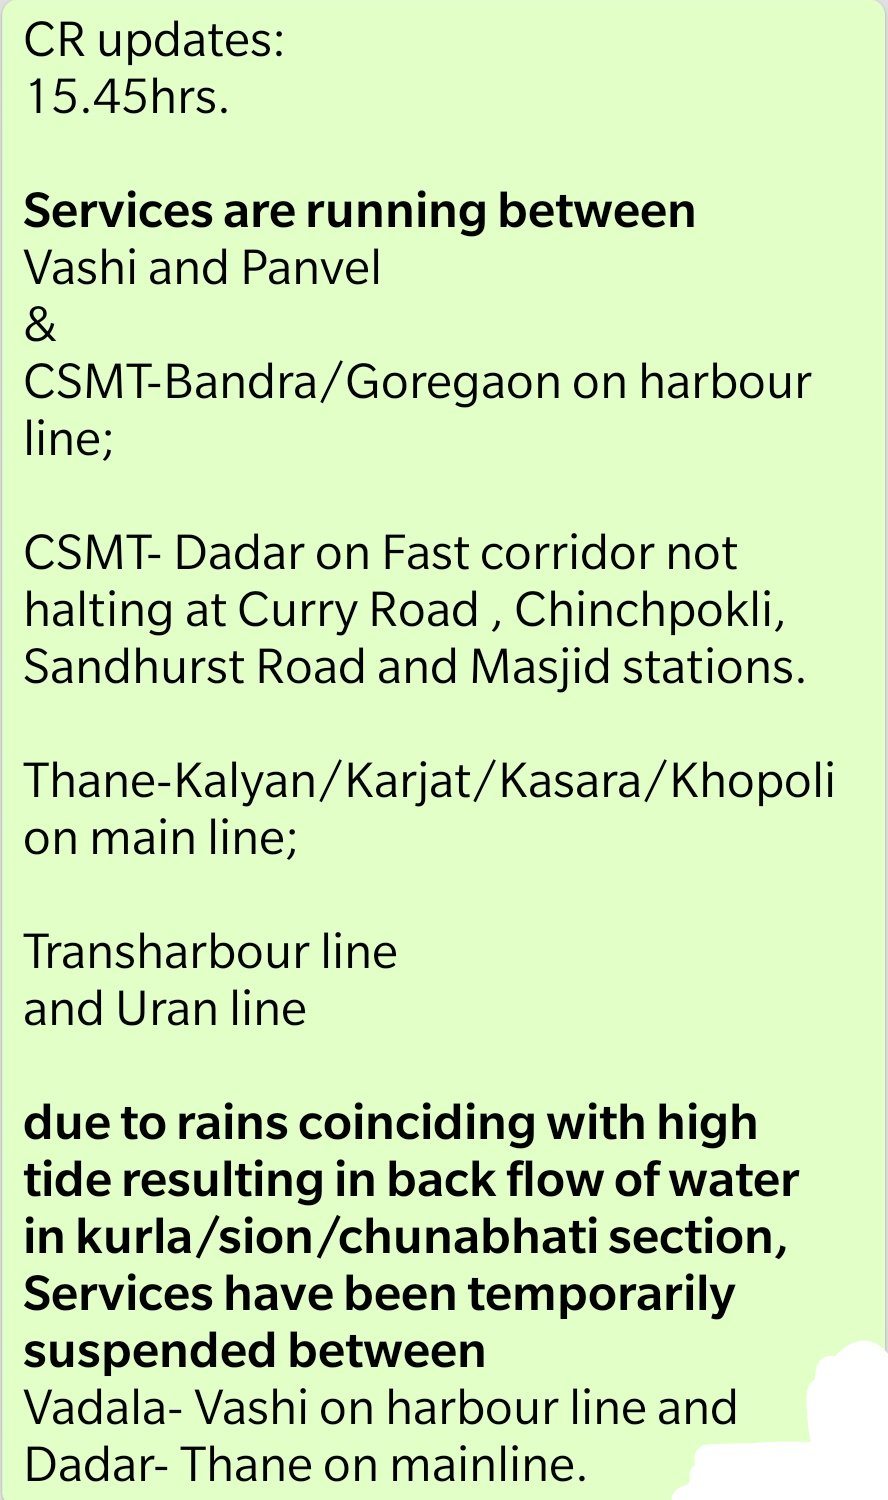 Mumbai rains LIVE: Rainfall intensity likely to continue for next 24